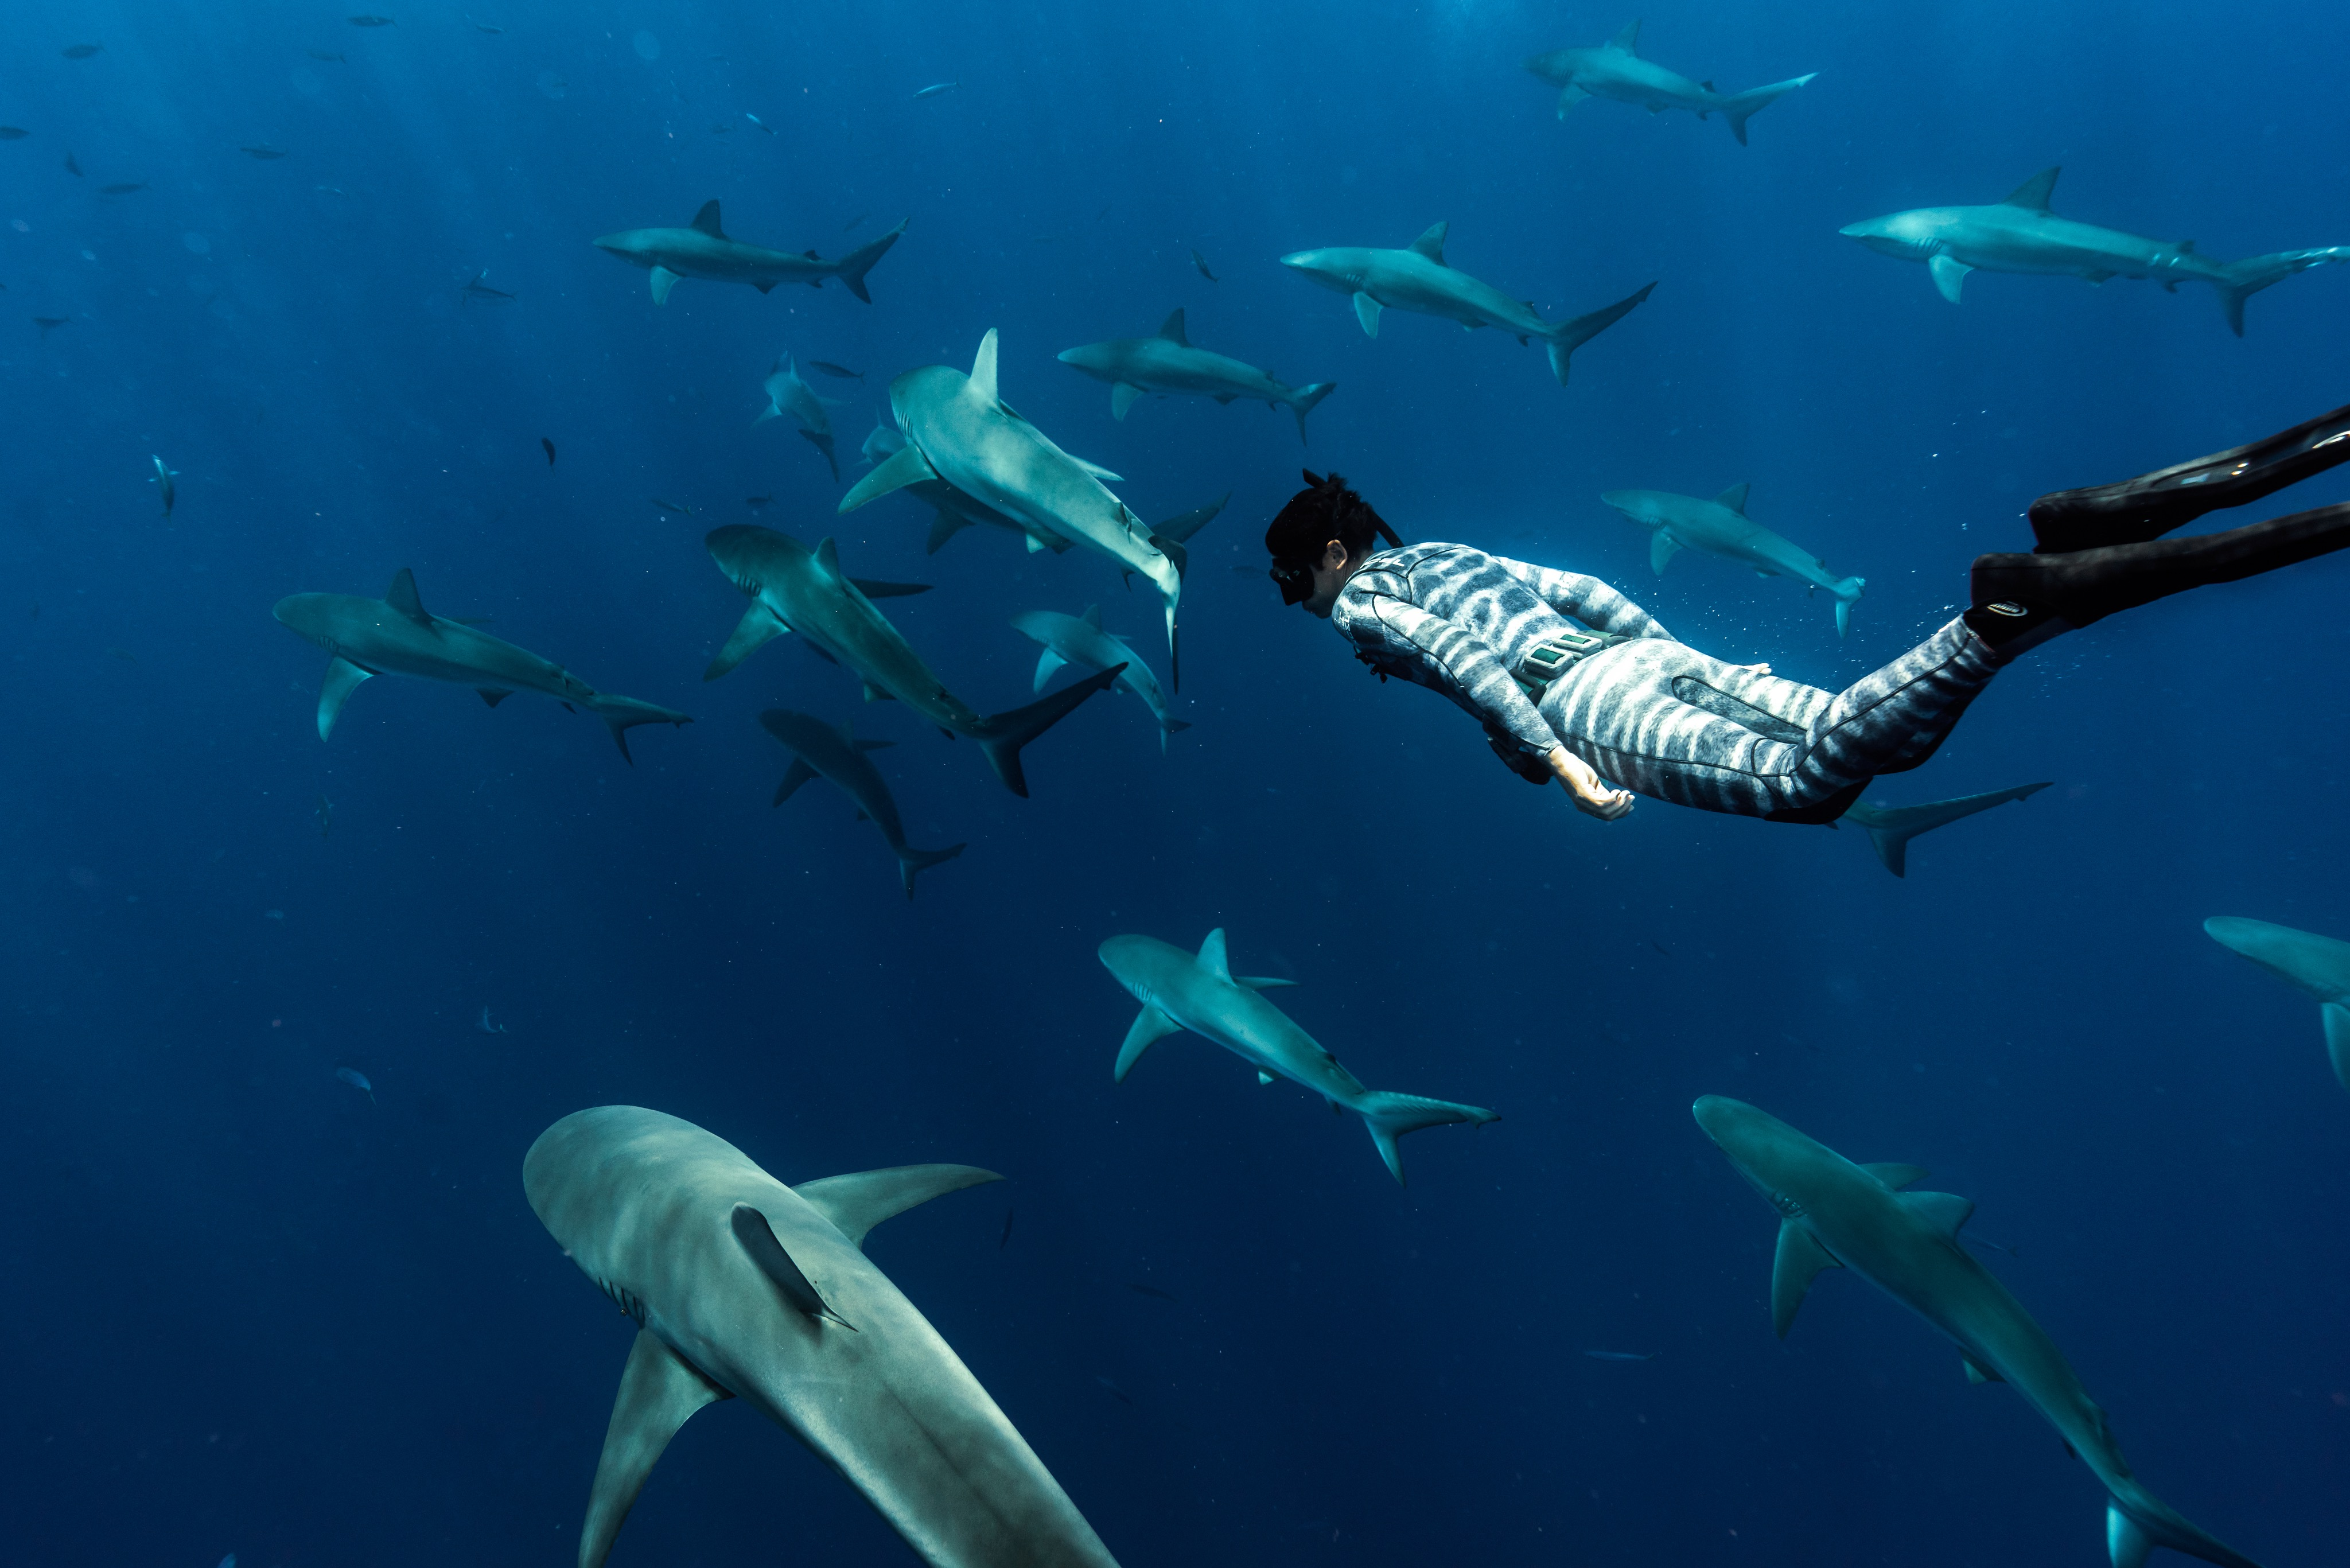 person swimming in ocean among dozens of sharks